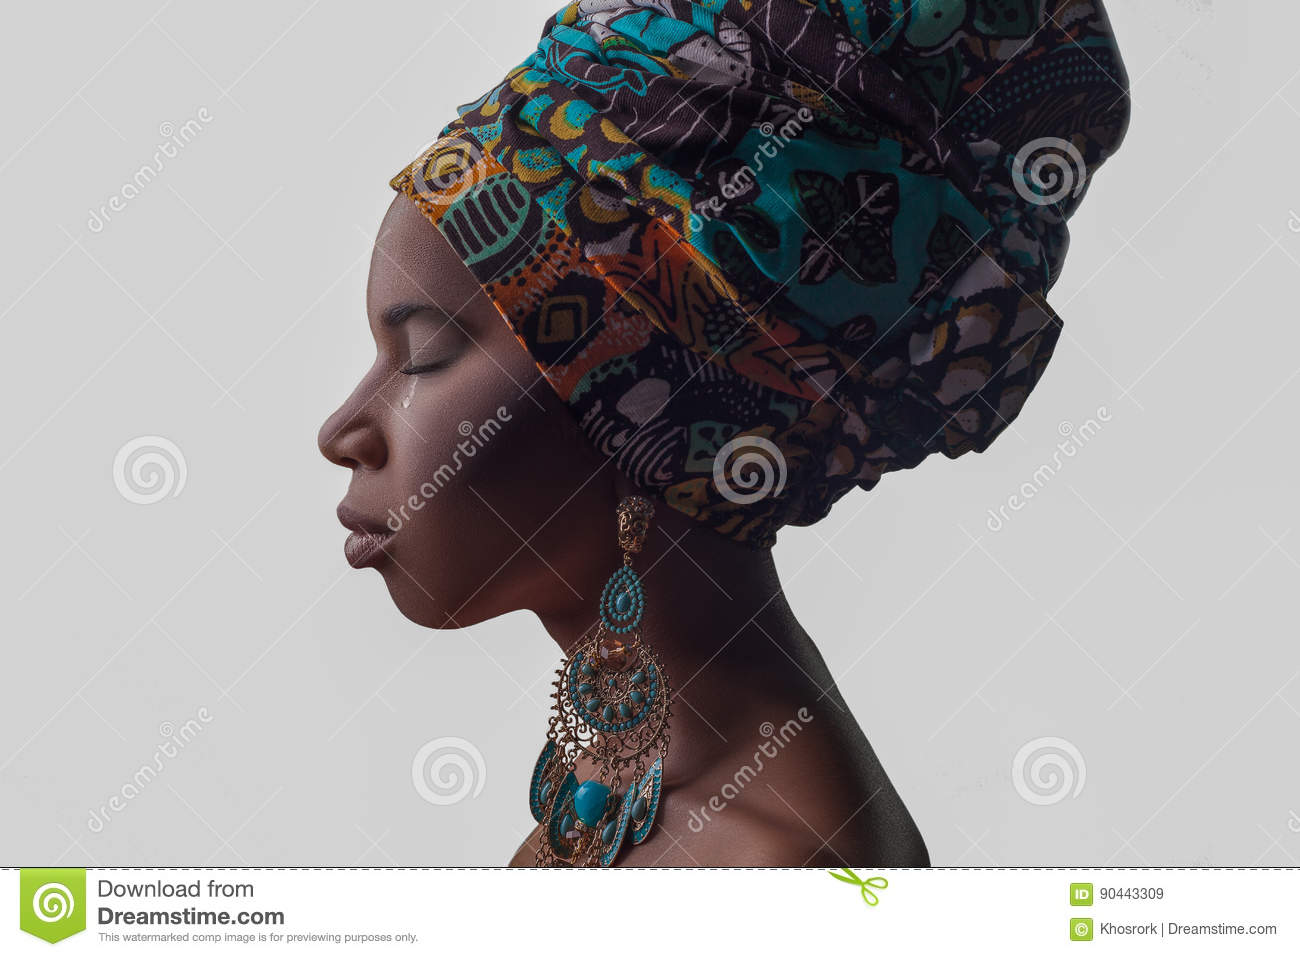 Young beautiful African woman in traditional style with scarf, earrings crying, isolated on gray background.